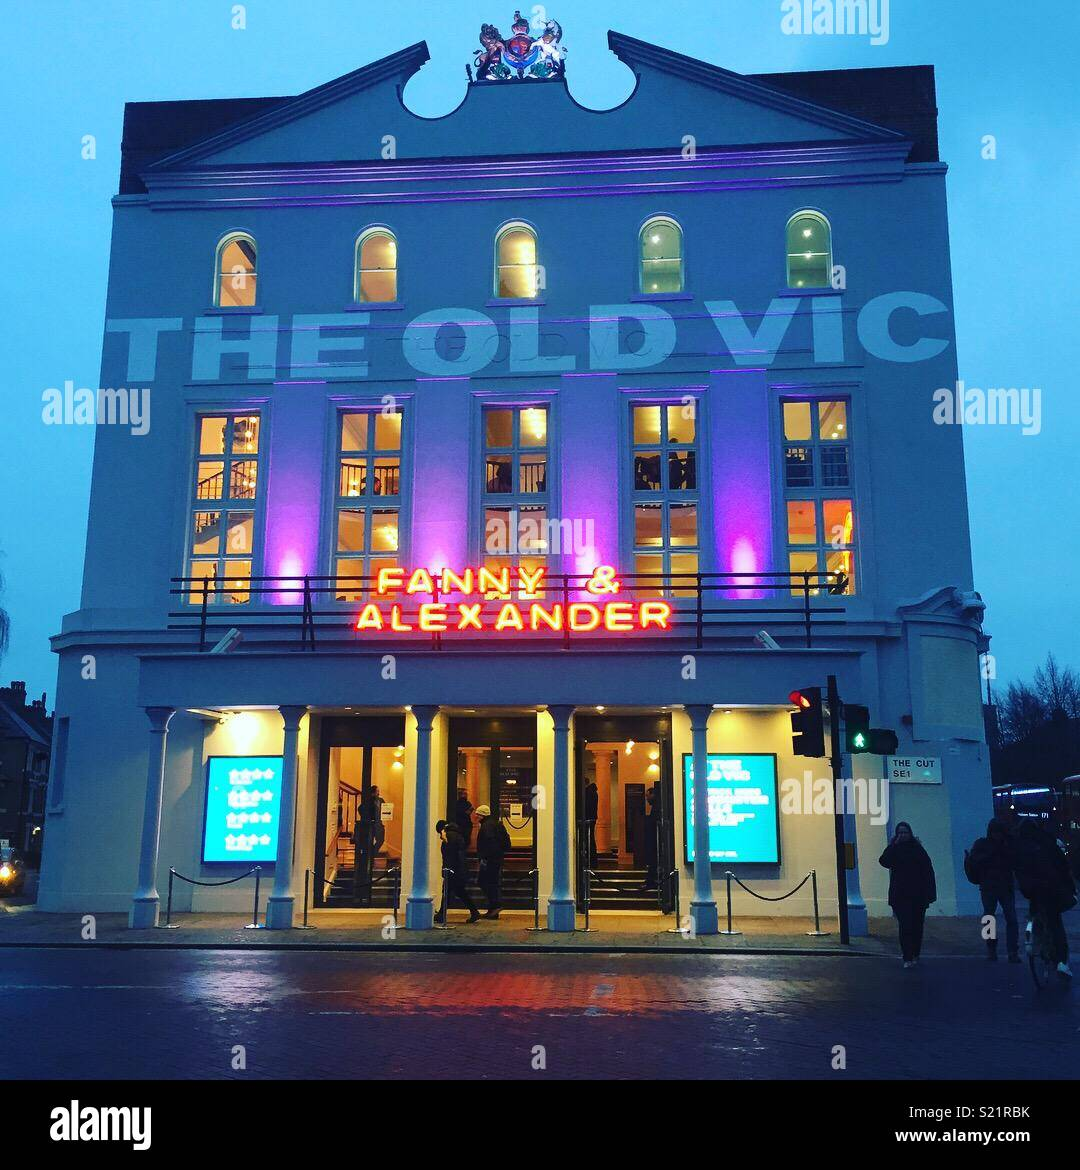 The Old Vic theatre - Stock Image